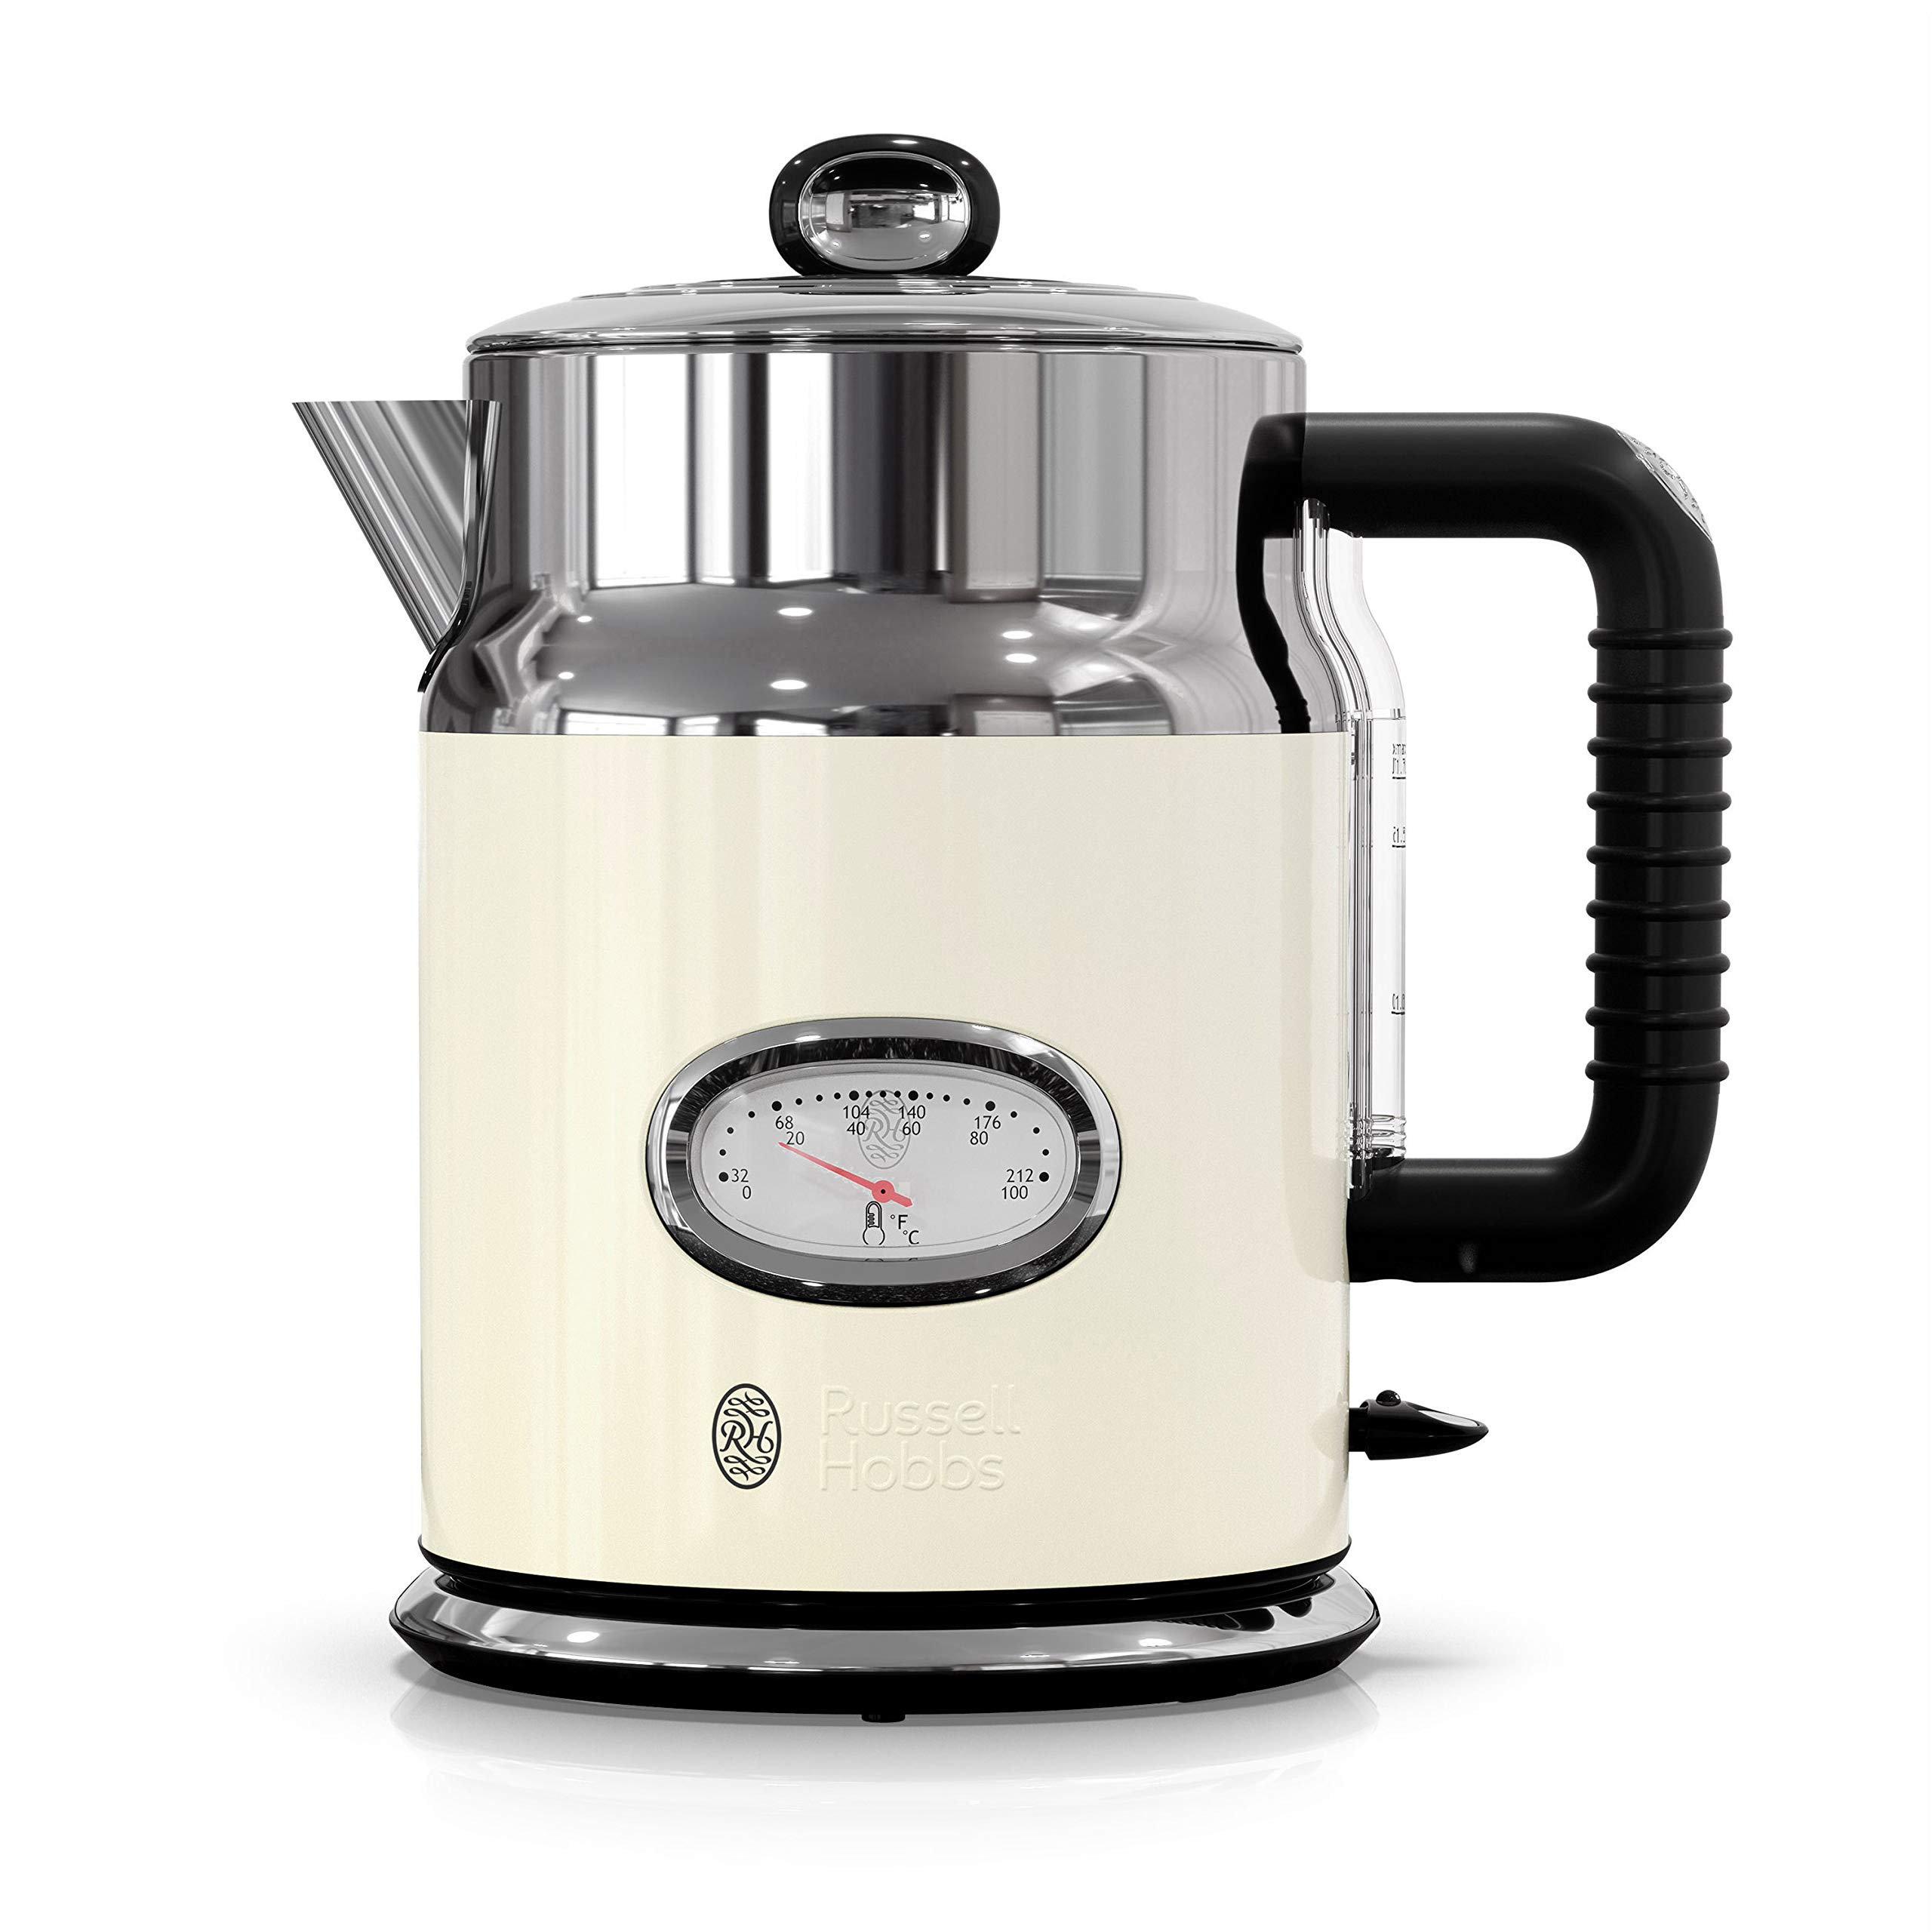 Russell Hobbs KE5550CRR Retro Style Electric Kettle, 1.7L, Cream by Russell Hobbs (Image #8)